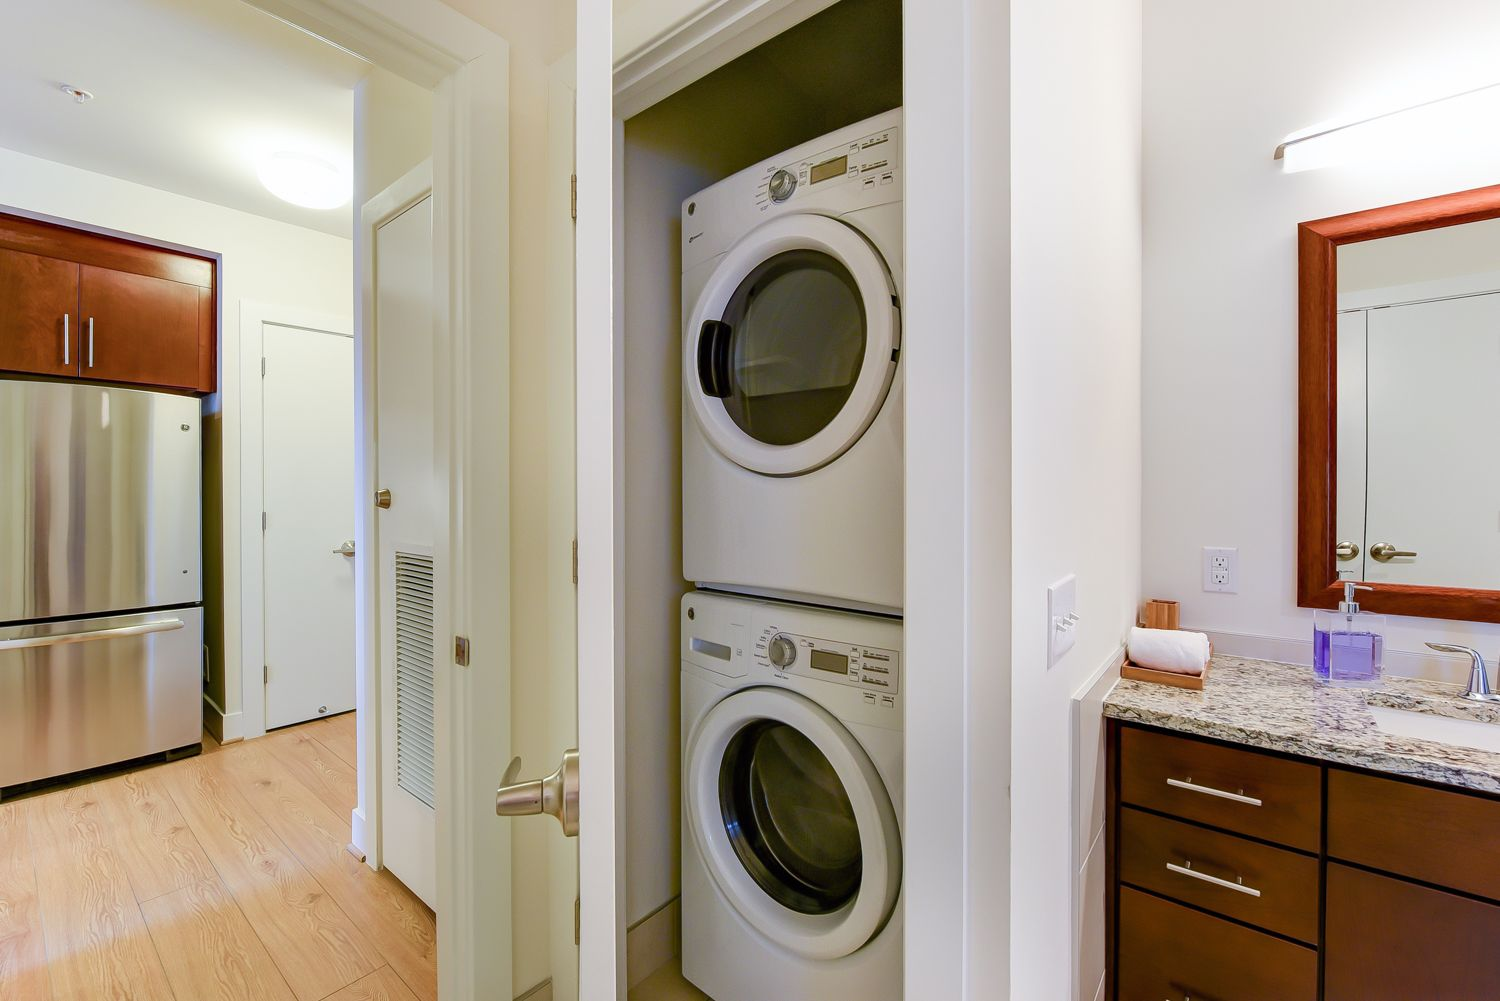 New-Park-Chelsea-washer-and-dryer